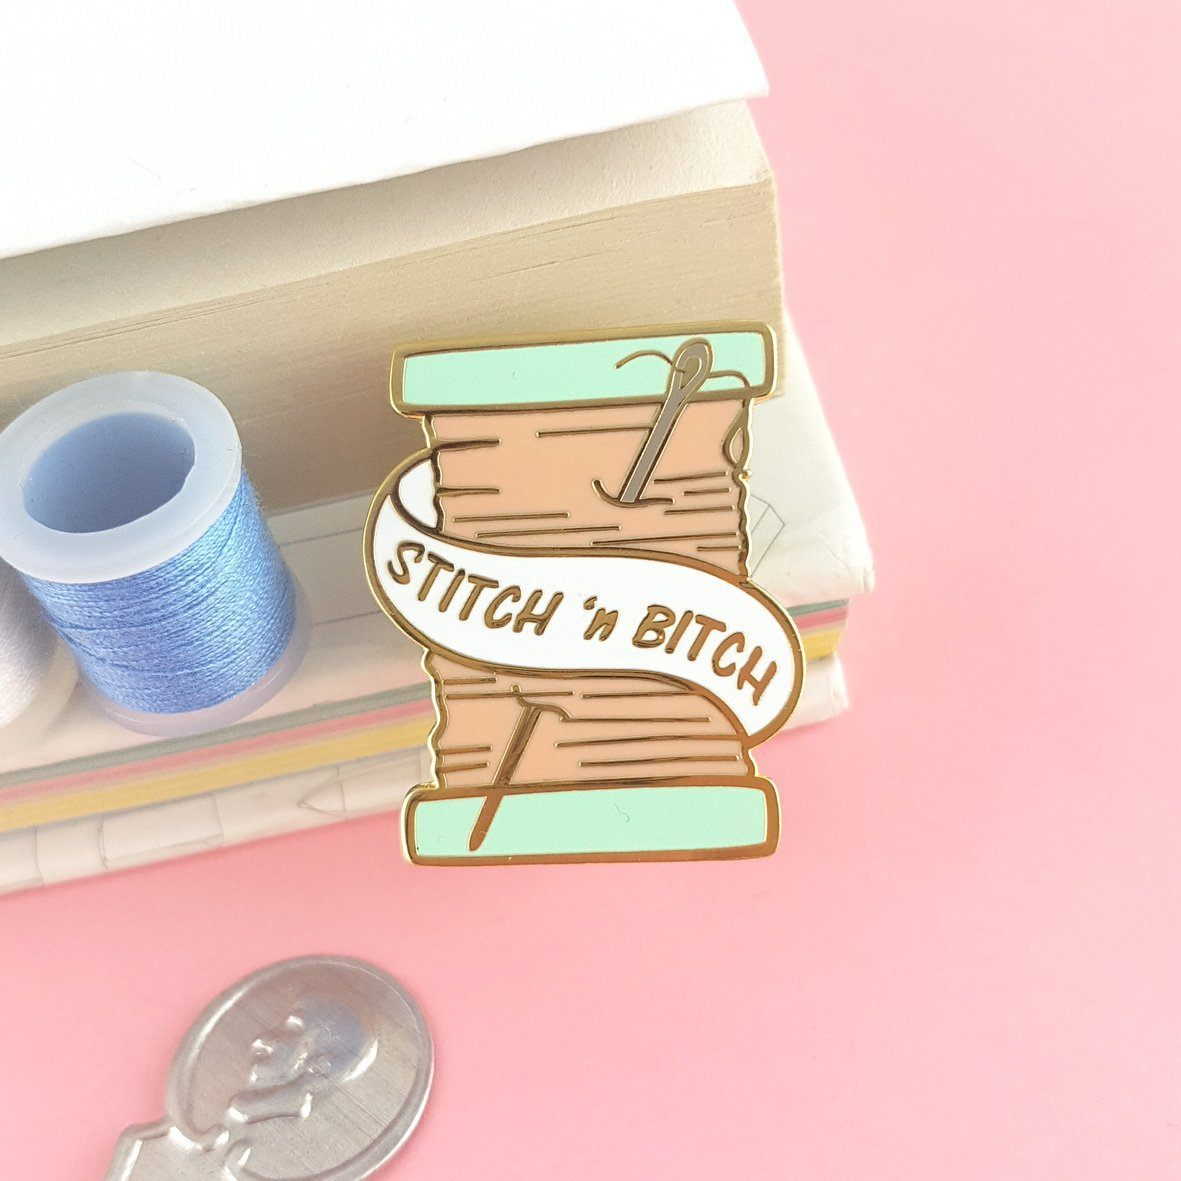 Stitch and Bitch Lapel Pin